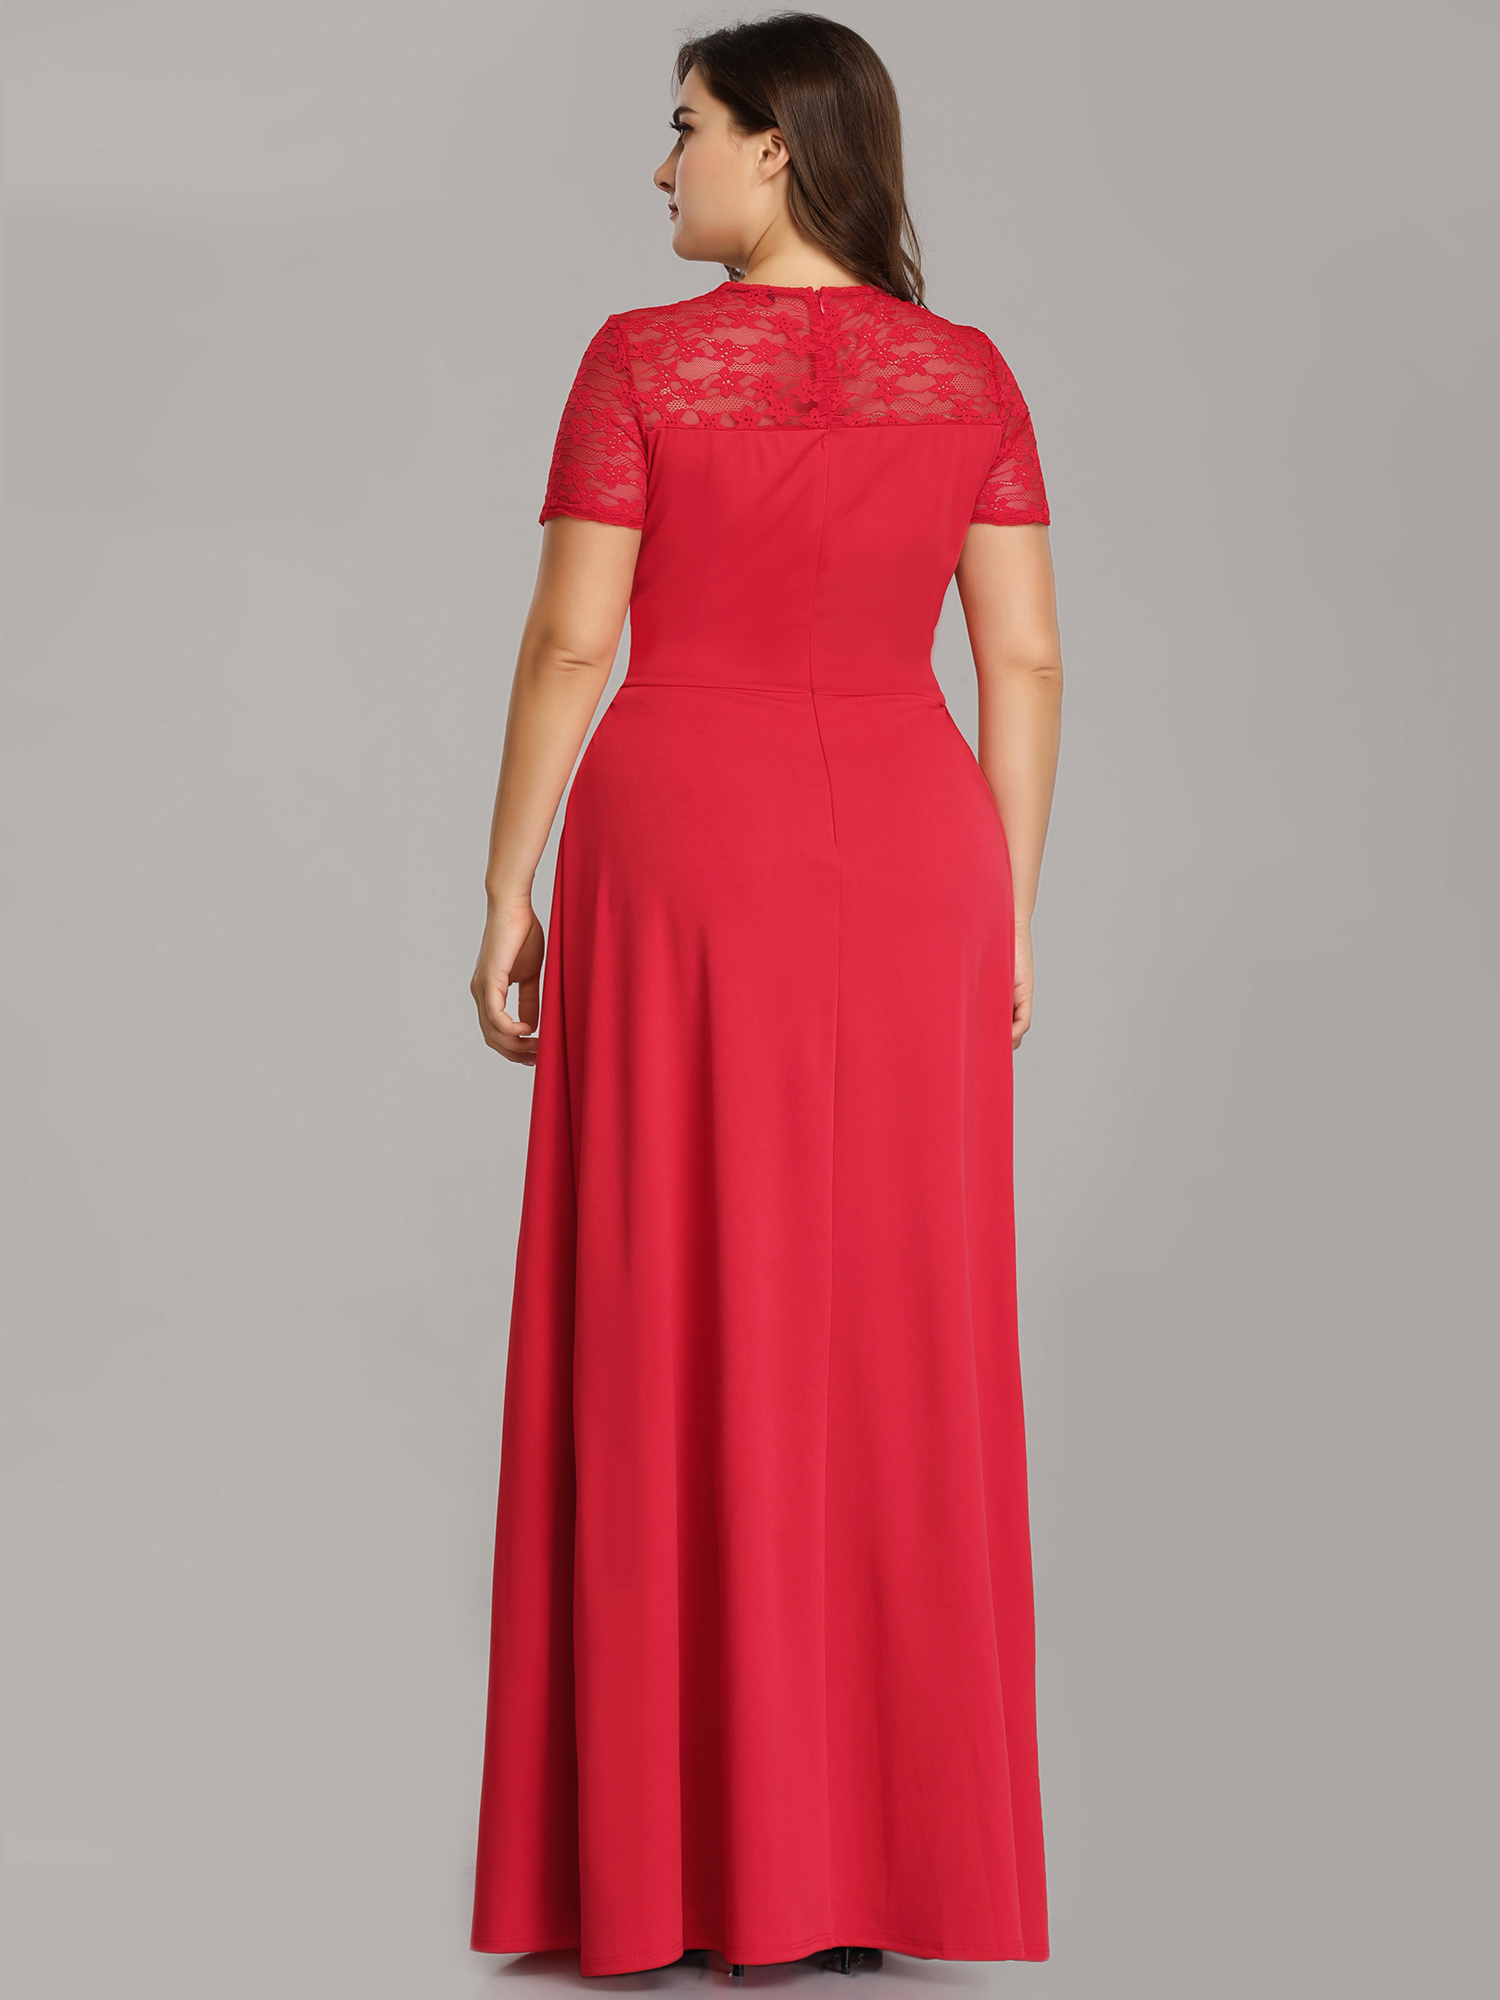 Women-A-Line-V-Neck-Red-Dress-Plus-Size-Formal-Evening-Mother-of-the-Bride-Prom thumbnail 9